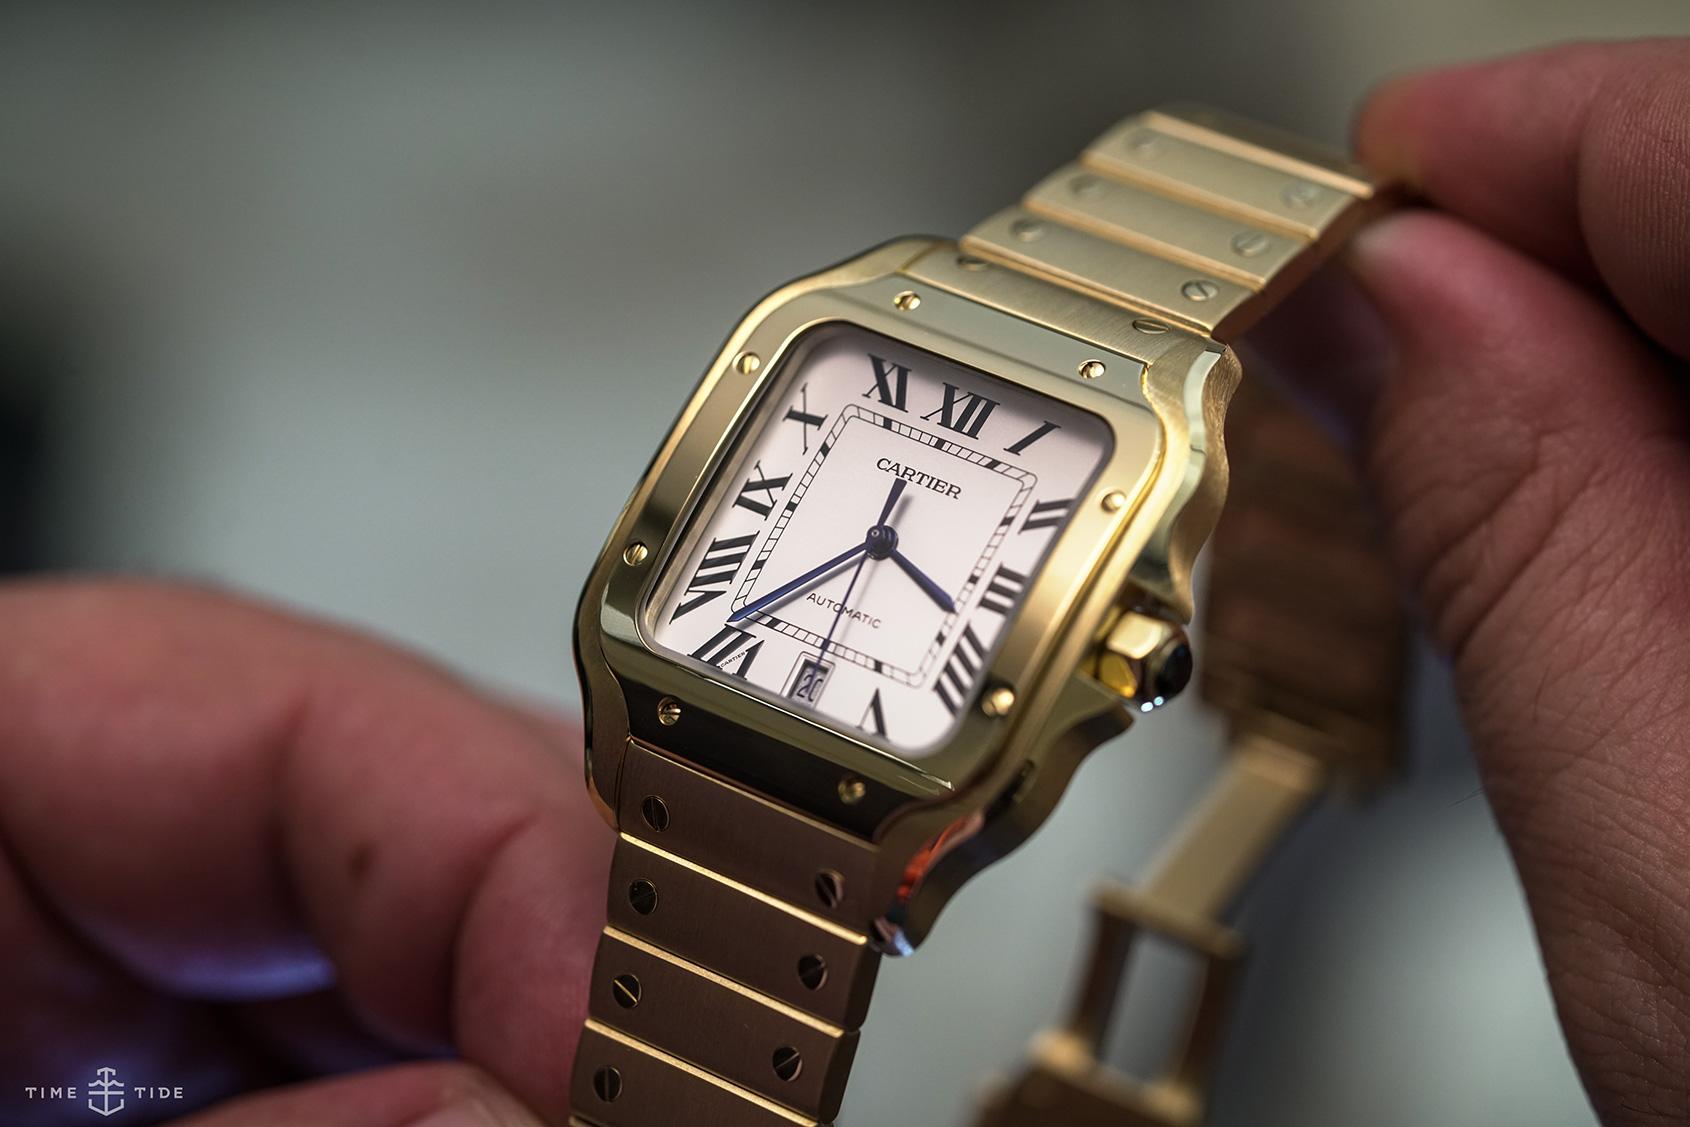 c51cb688b1a Cartier have carved themselves an unimpeachable place as the evergreen  masters of the shaped watch